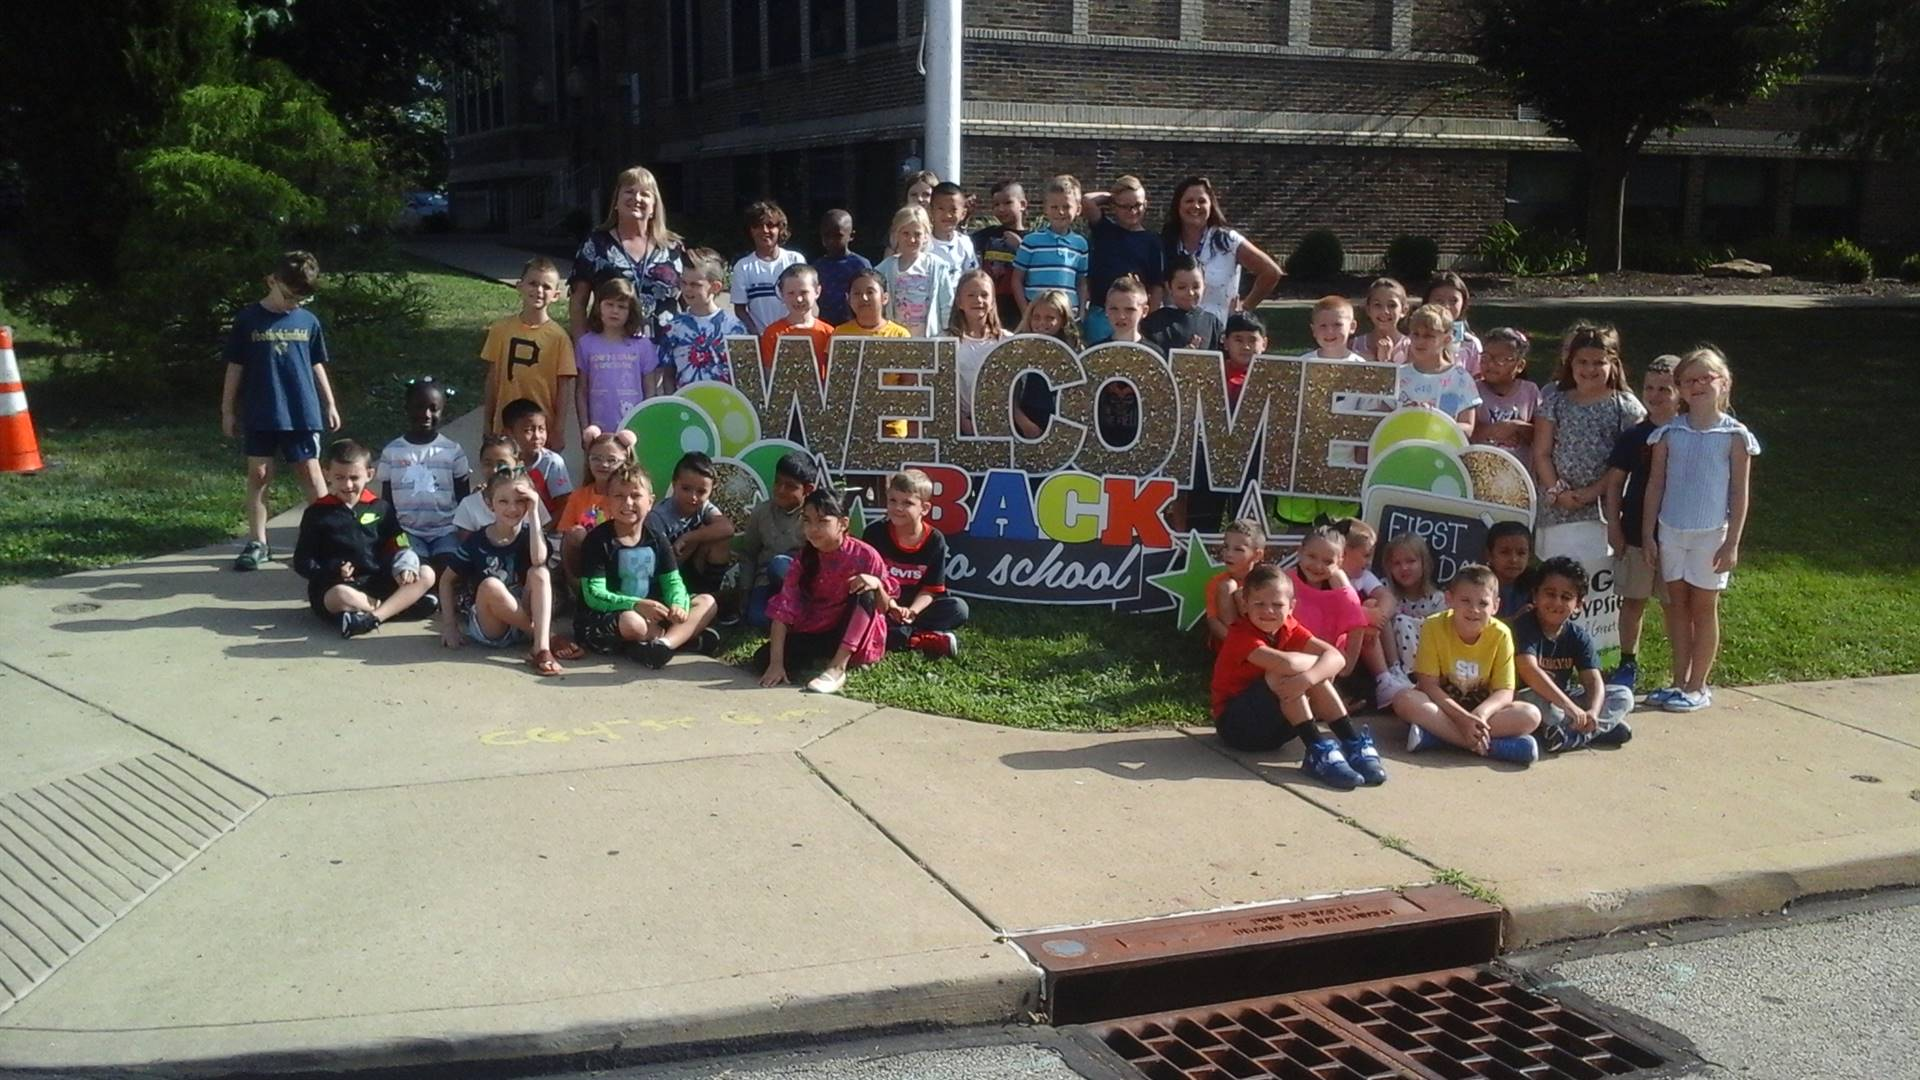 Welcome back! Our first day back to school!